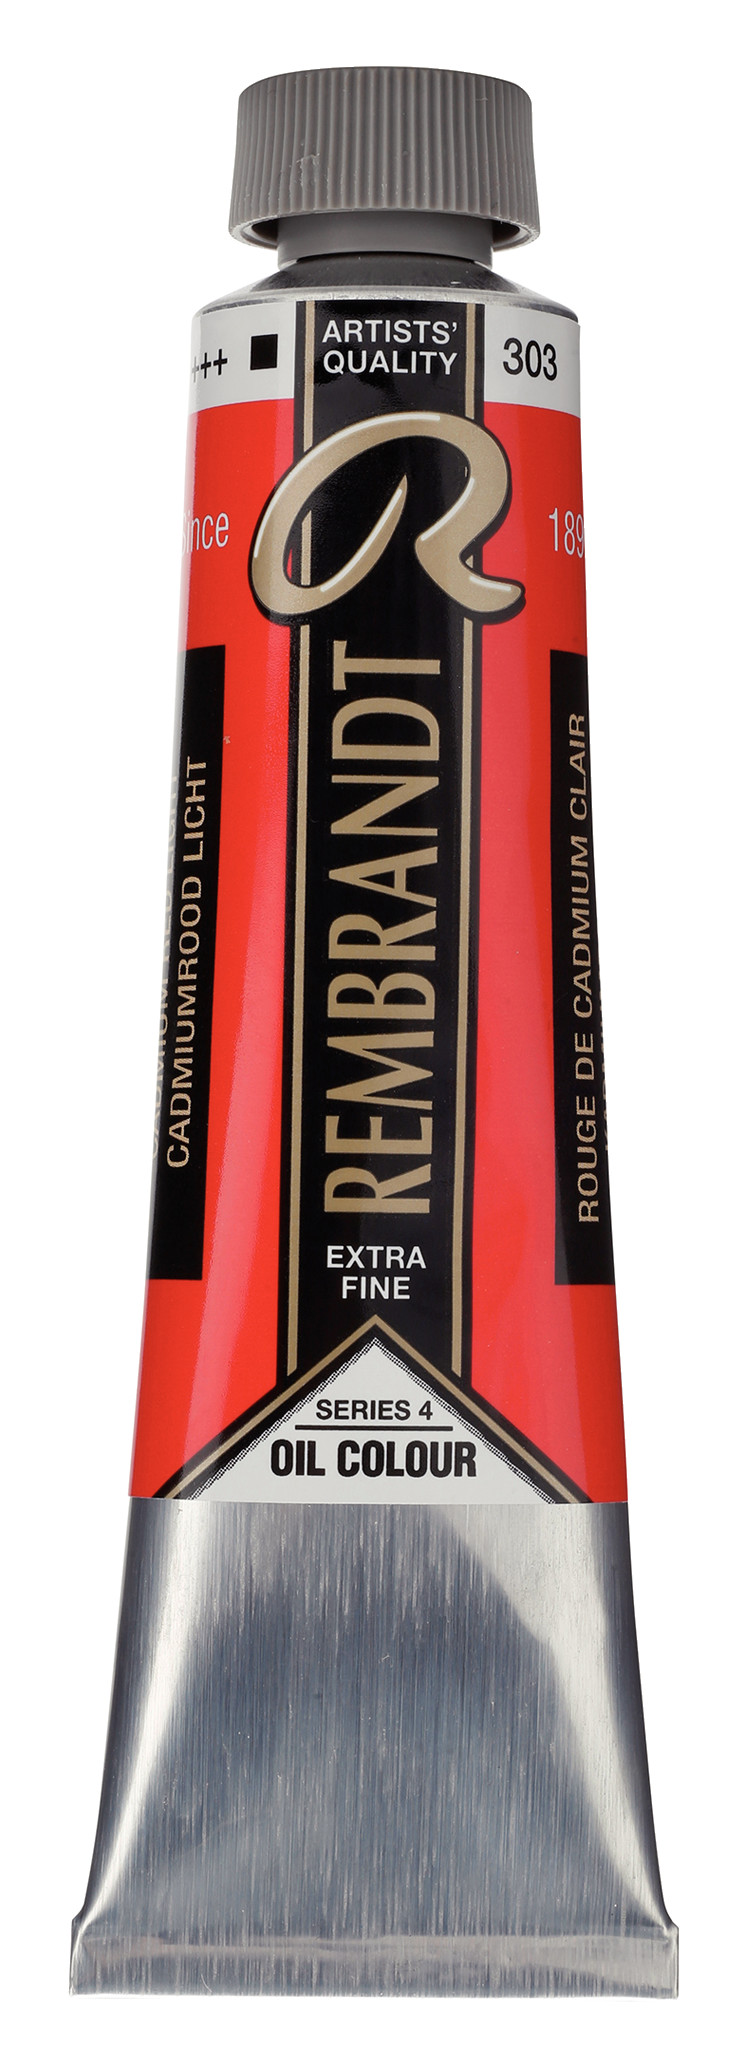 Rembrandt Oil colour Paint Cadmium Red Light (303) 40ml Tube